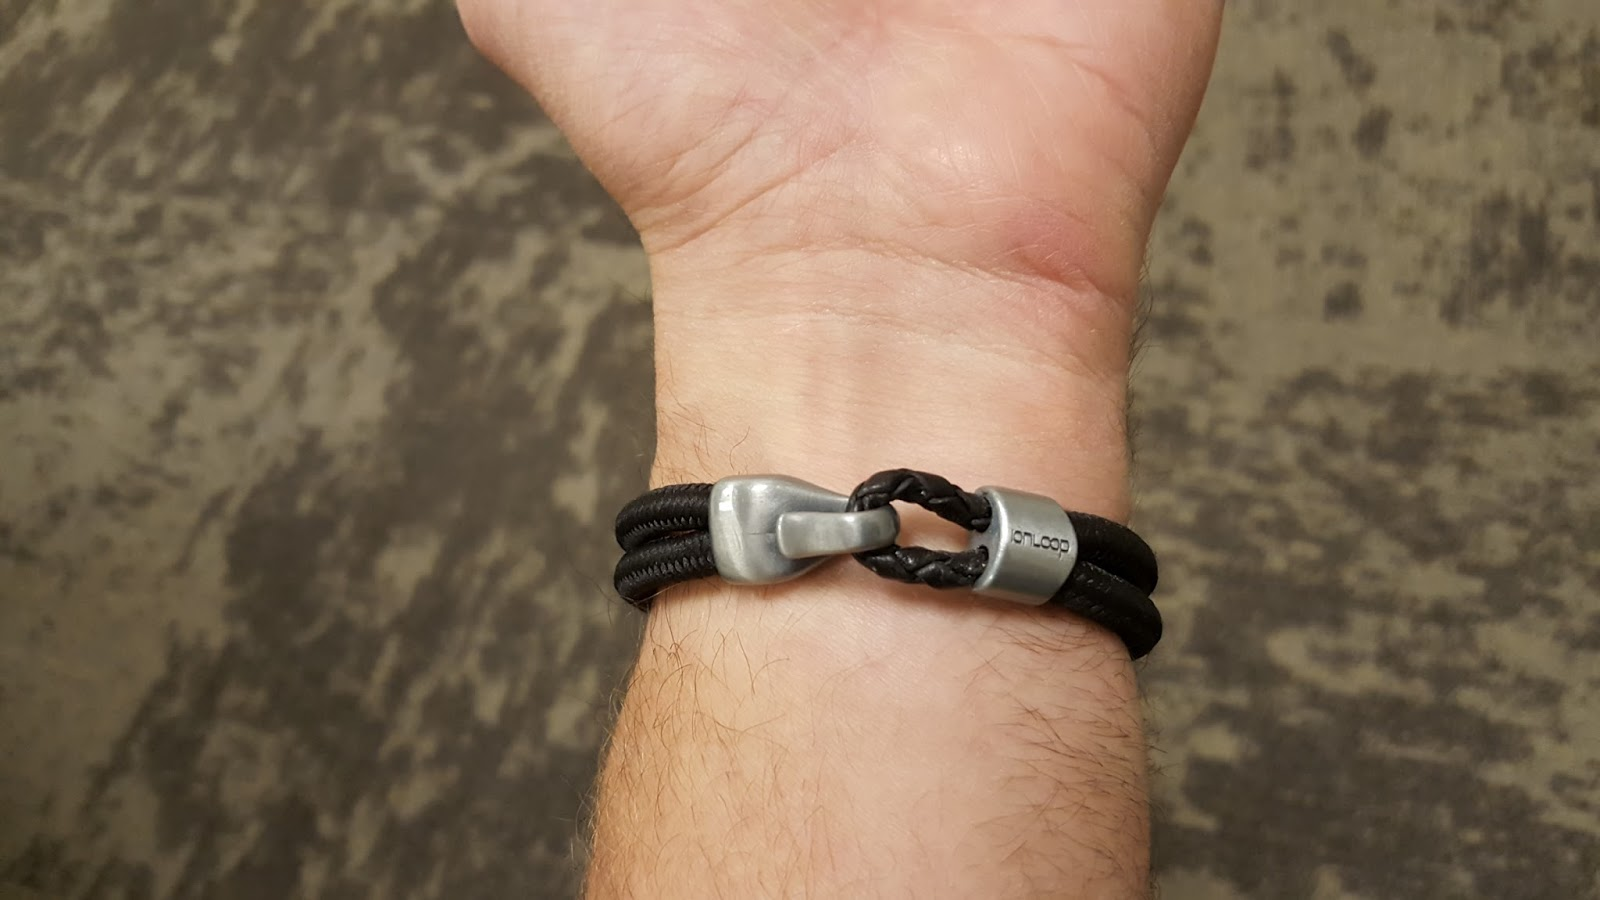 I Got To Test Out The Dual Cord Bracelet It Has Two Nylon Cords That Are Loaded With Negative Ions And Ful Magnets There Is A Leather Loop